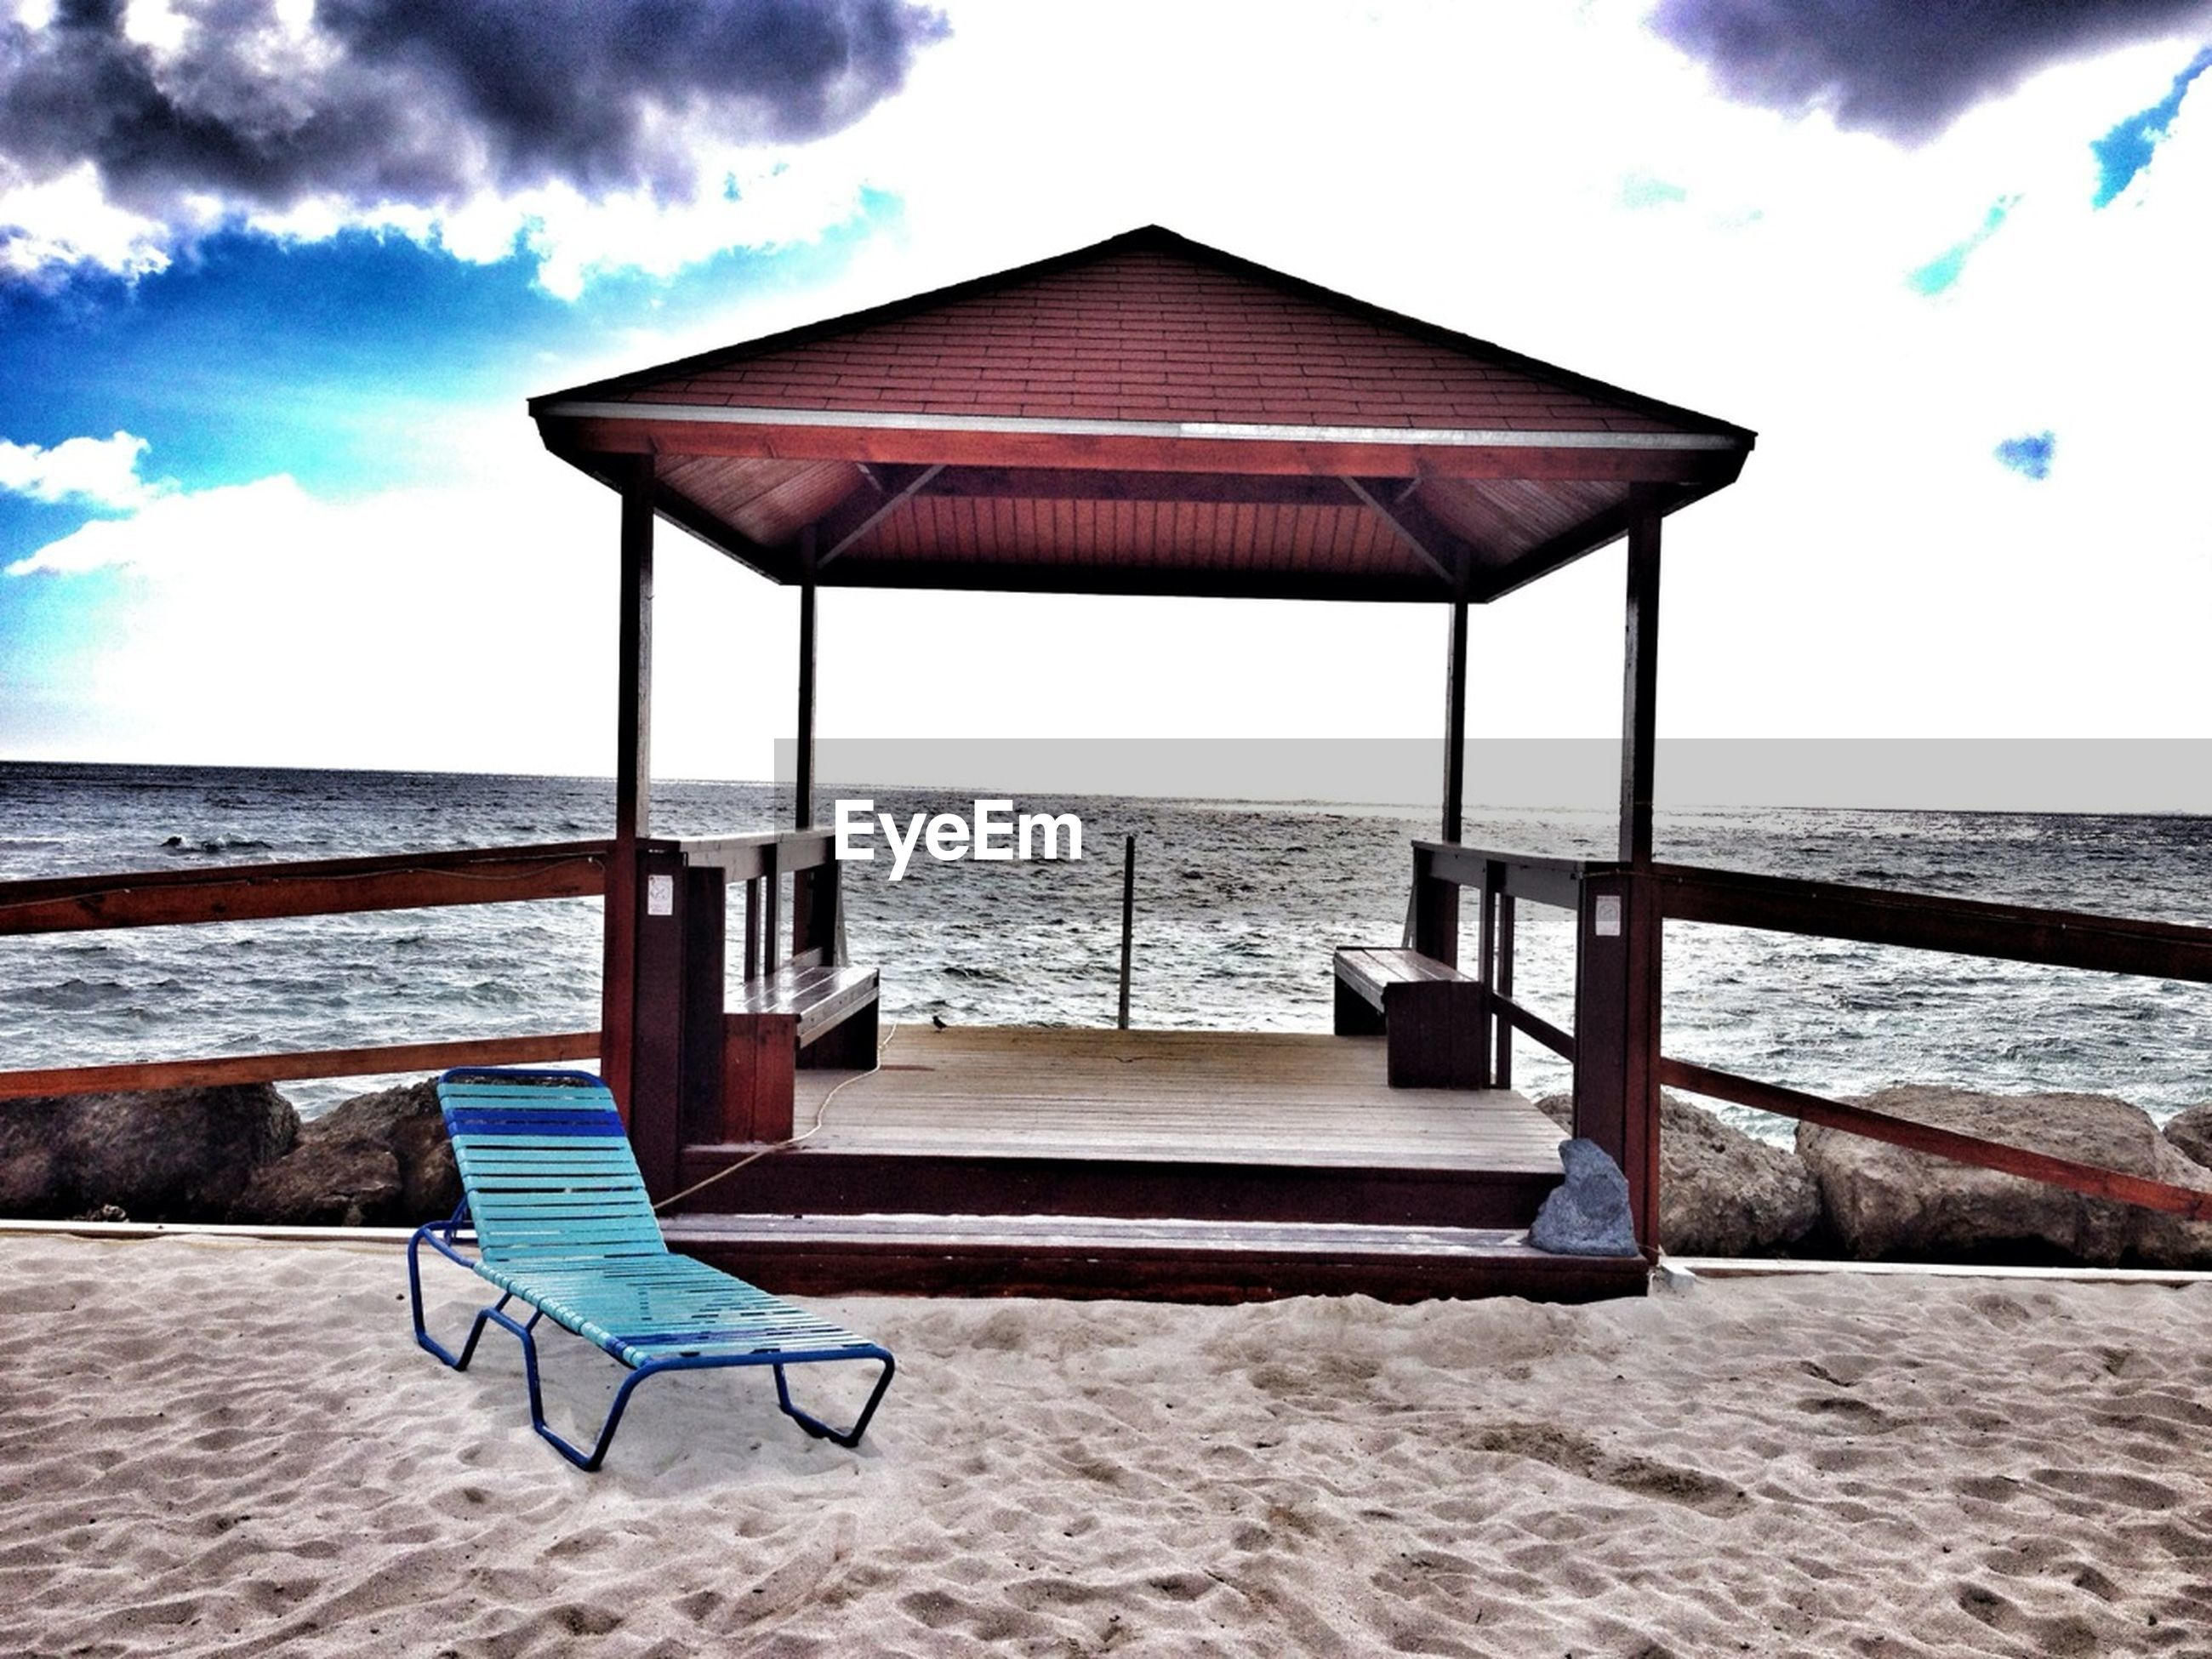 sea, beach, sand, sky, absence, water, chair, horizon over water, empty, shore, tranquil scene, tranquility, scenics, deck chair, lounge chair, relaxation, beach umbrella, parasol, nature, vacations